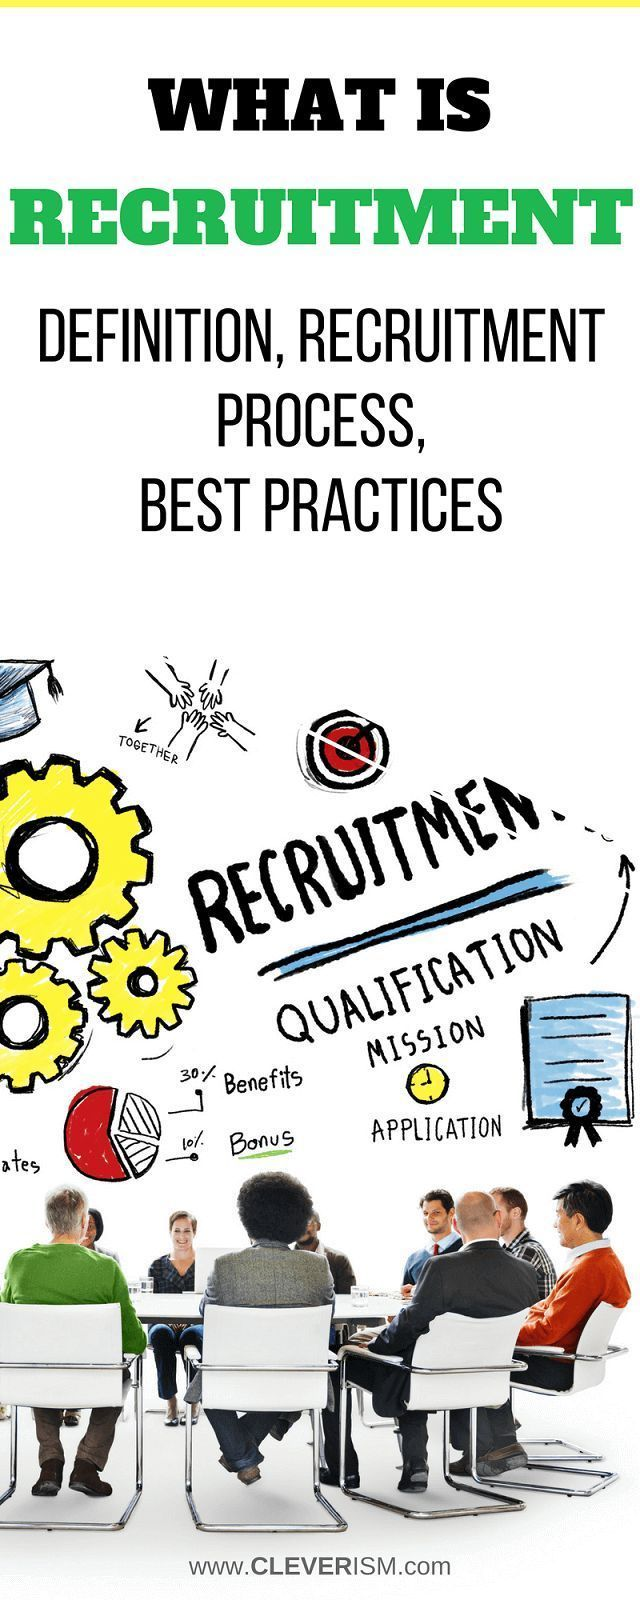 What is Recruitment  Definition, Recruitment Process, Best Practices - Recruitment, Best practice, Employee recruitment, Recruitment marketing, Cv writing service, Job interview advice - © Shutterstock com   Rawpixel com Advertising vacancies  Hiring  Conducting job interviews  Performing background checks  Reviewing application documents a